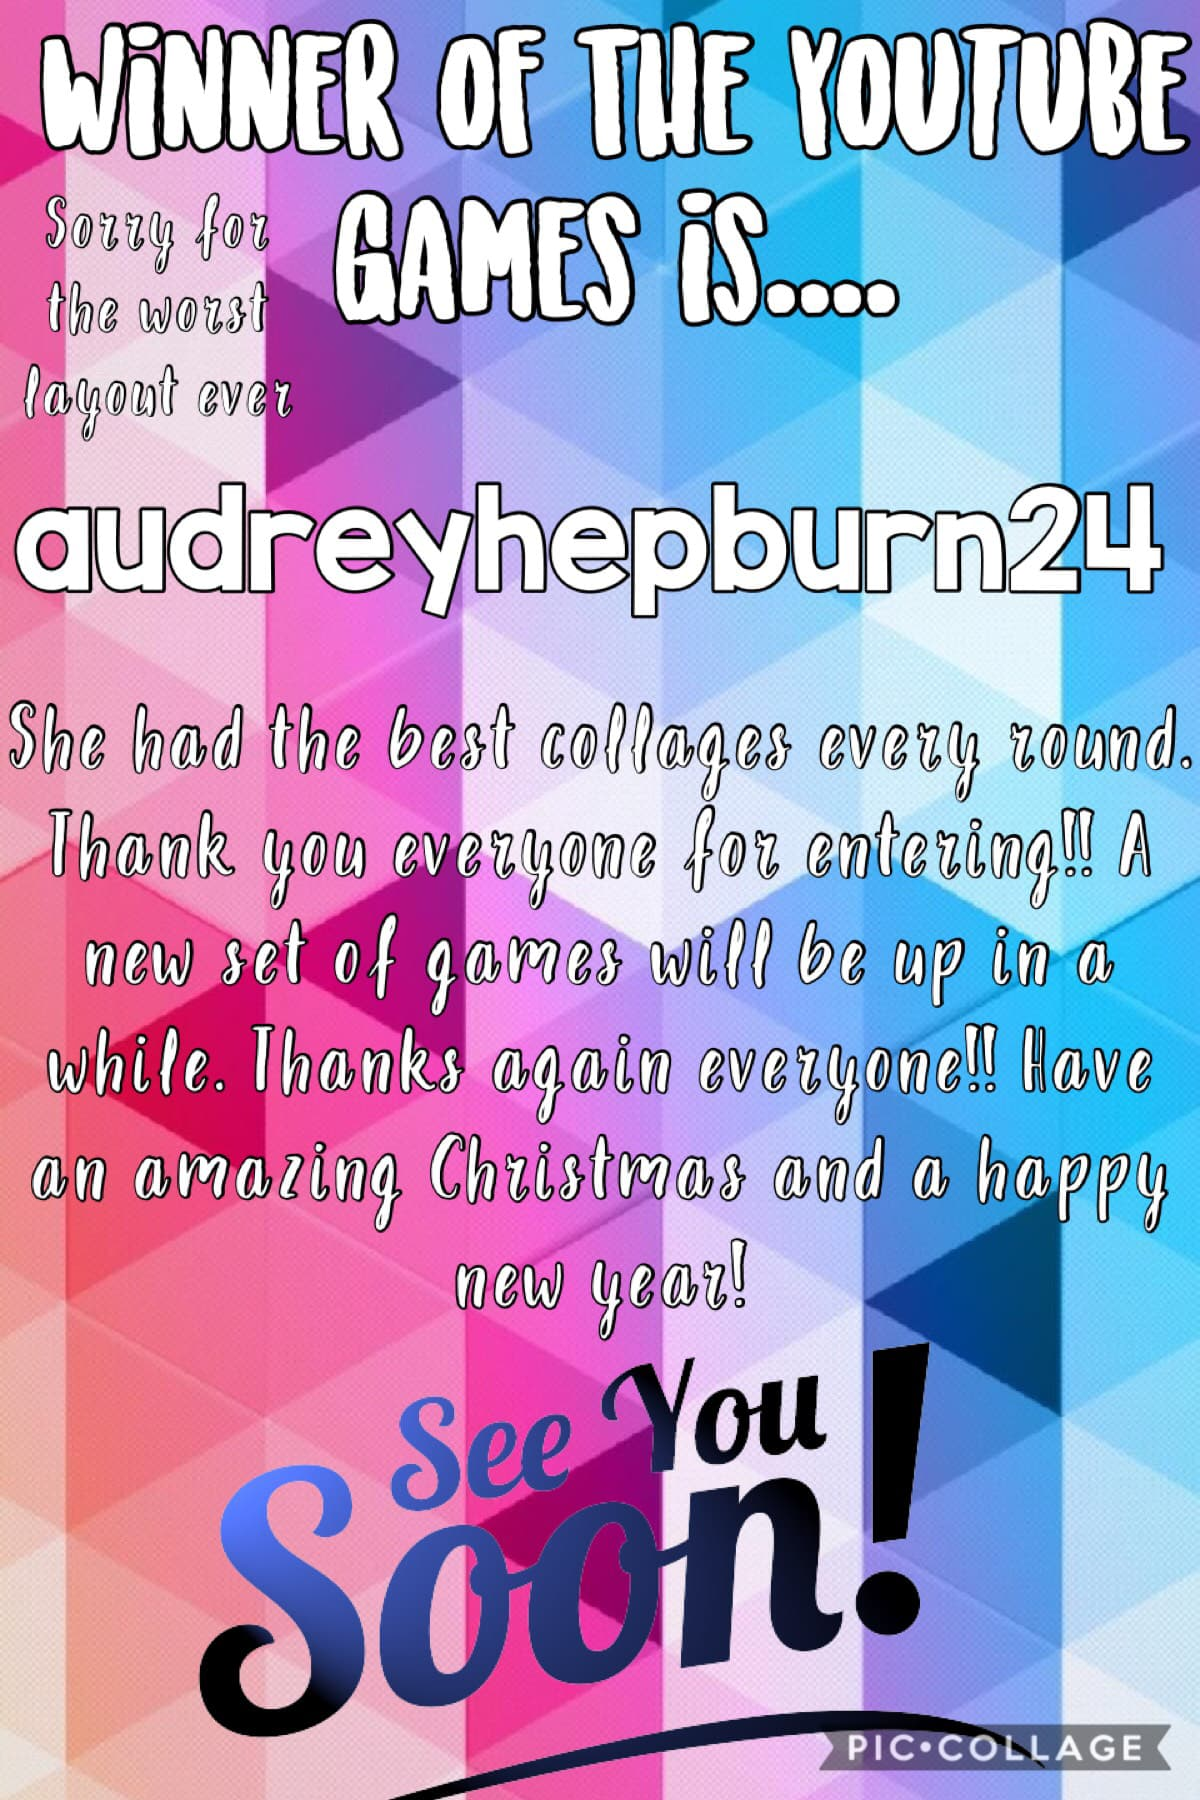 Congratulations to audreyhepburn24!!!  New games will either be up shortly, or in the next few days.